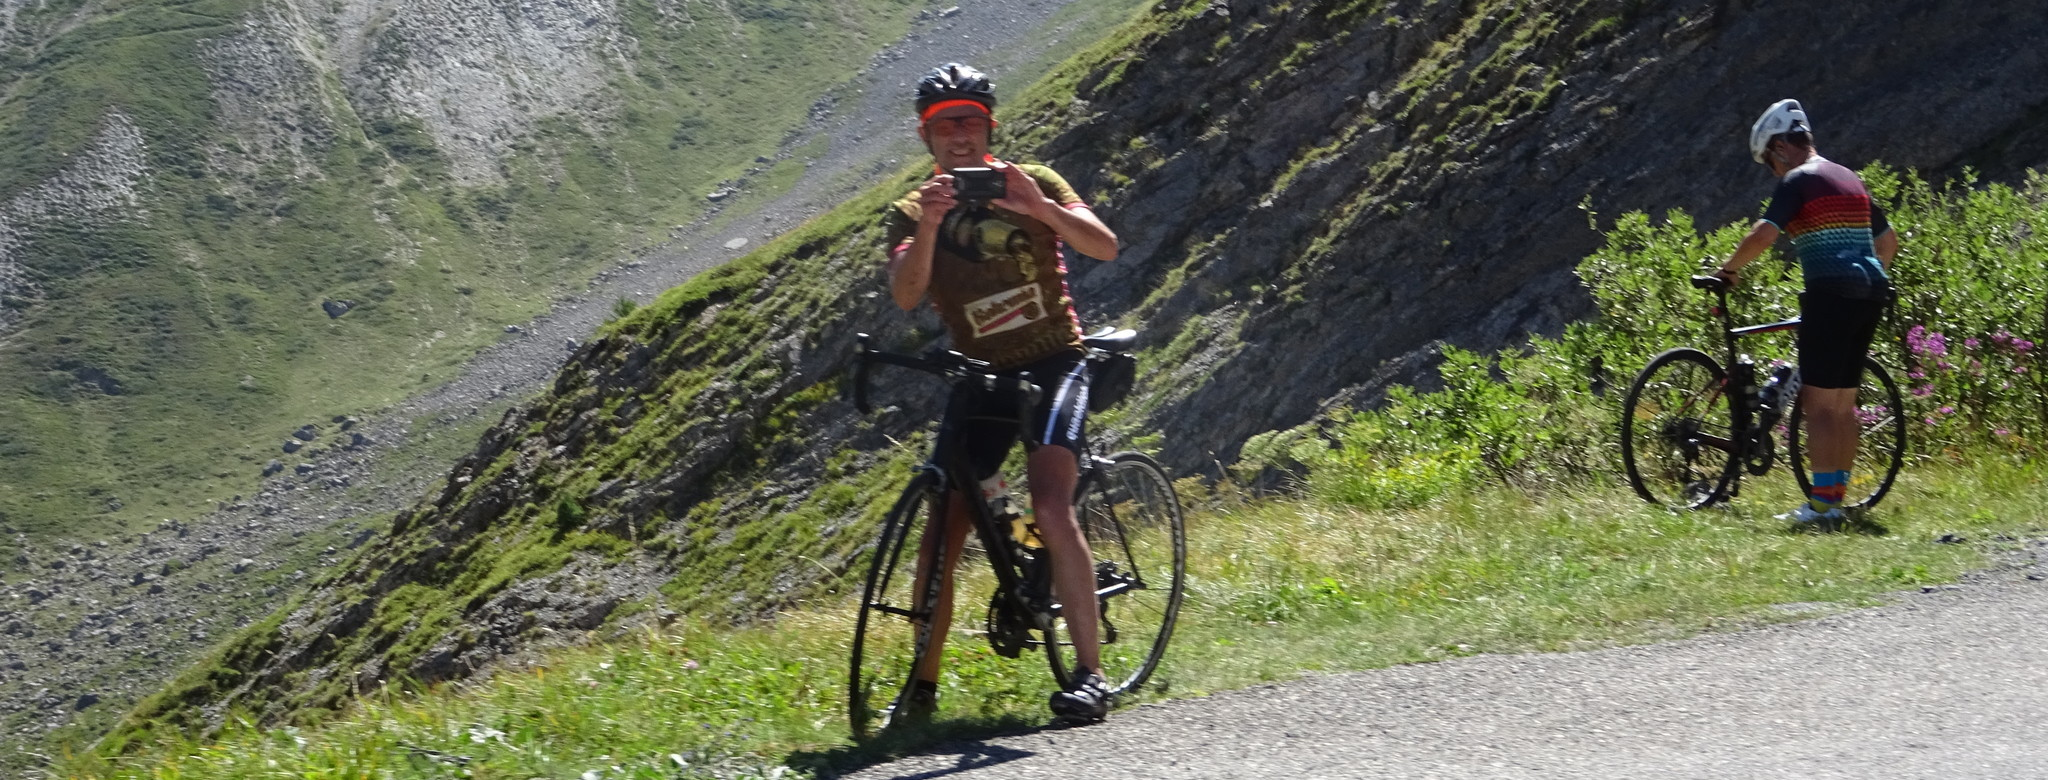 Fotostop am Galibier.